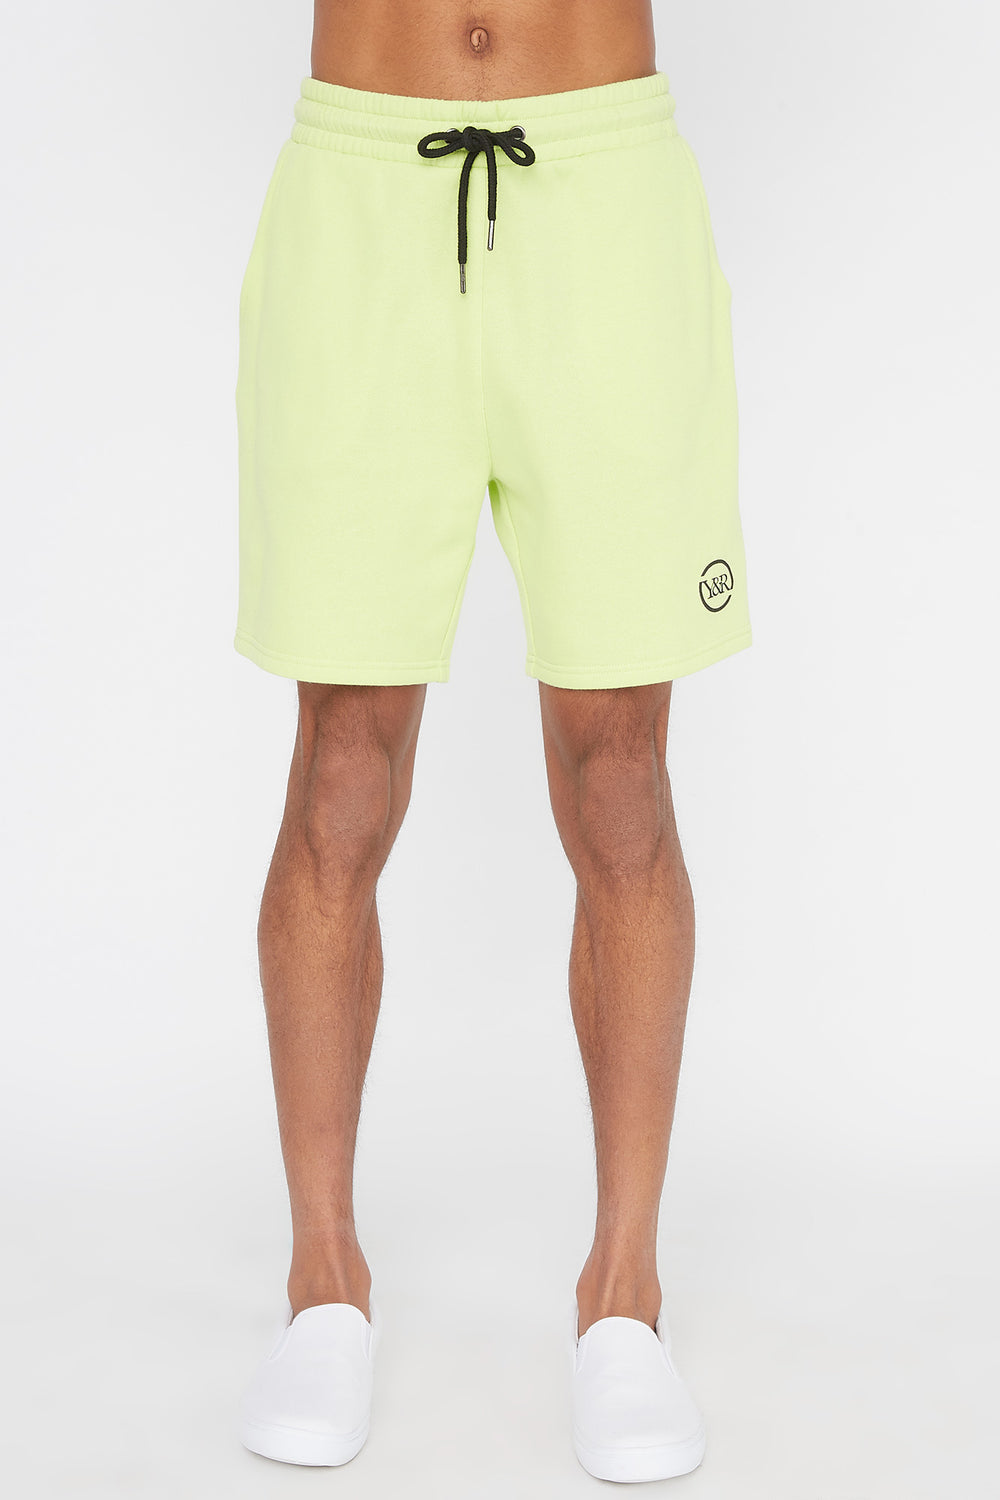 Young & Reckless Mens Neon Short Neon Green